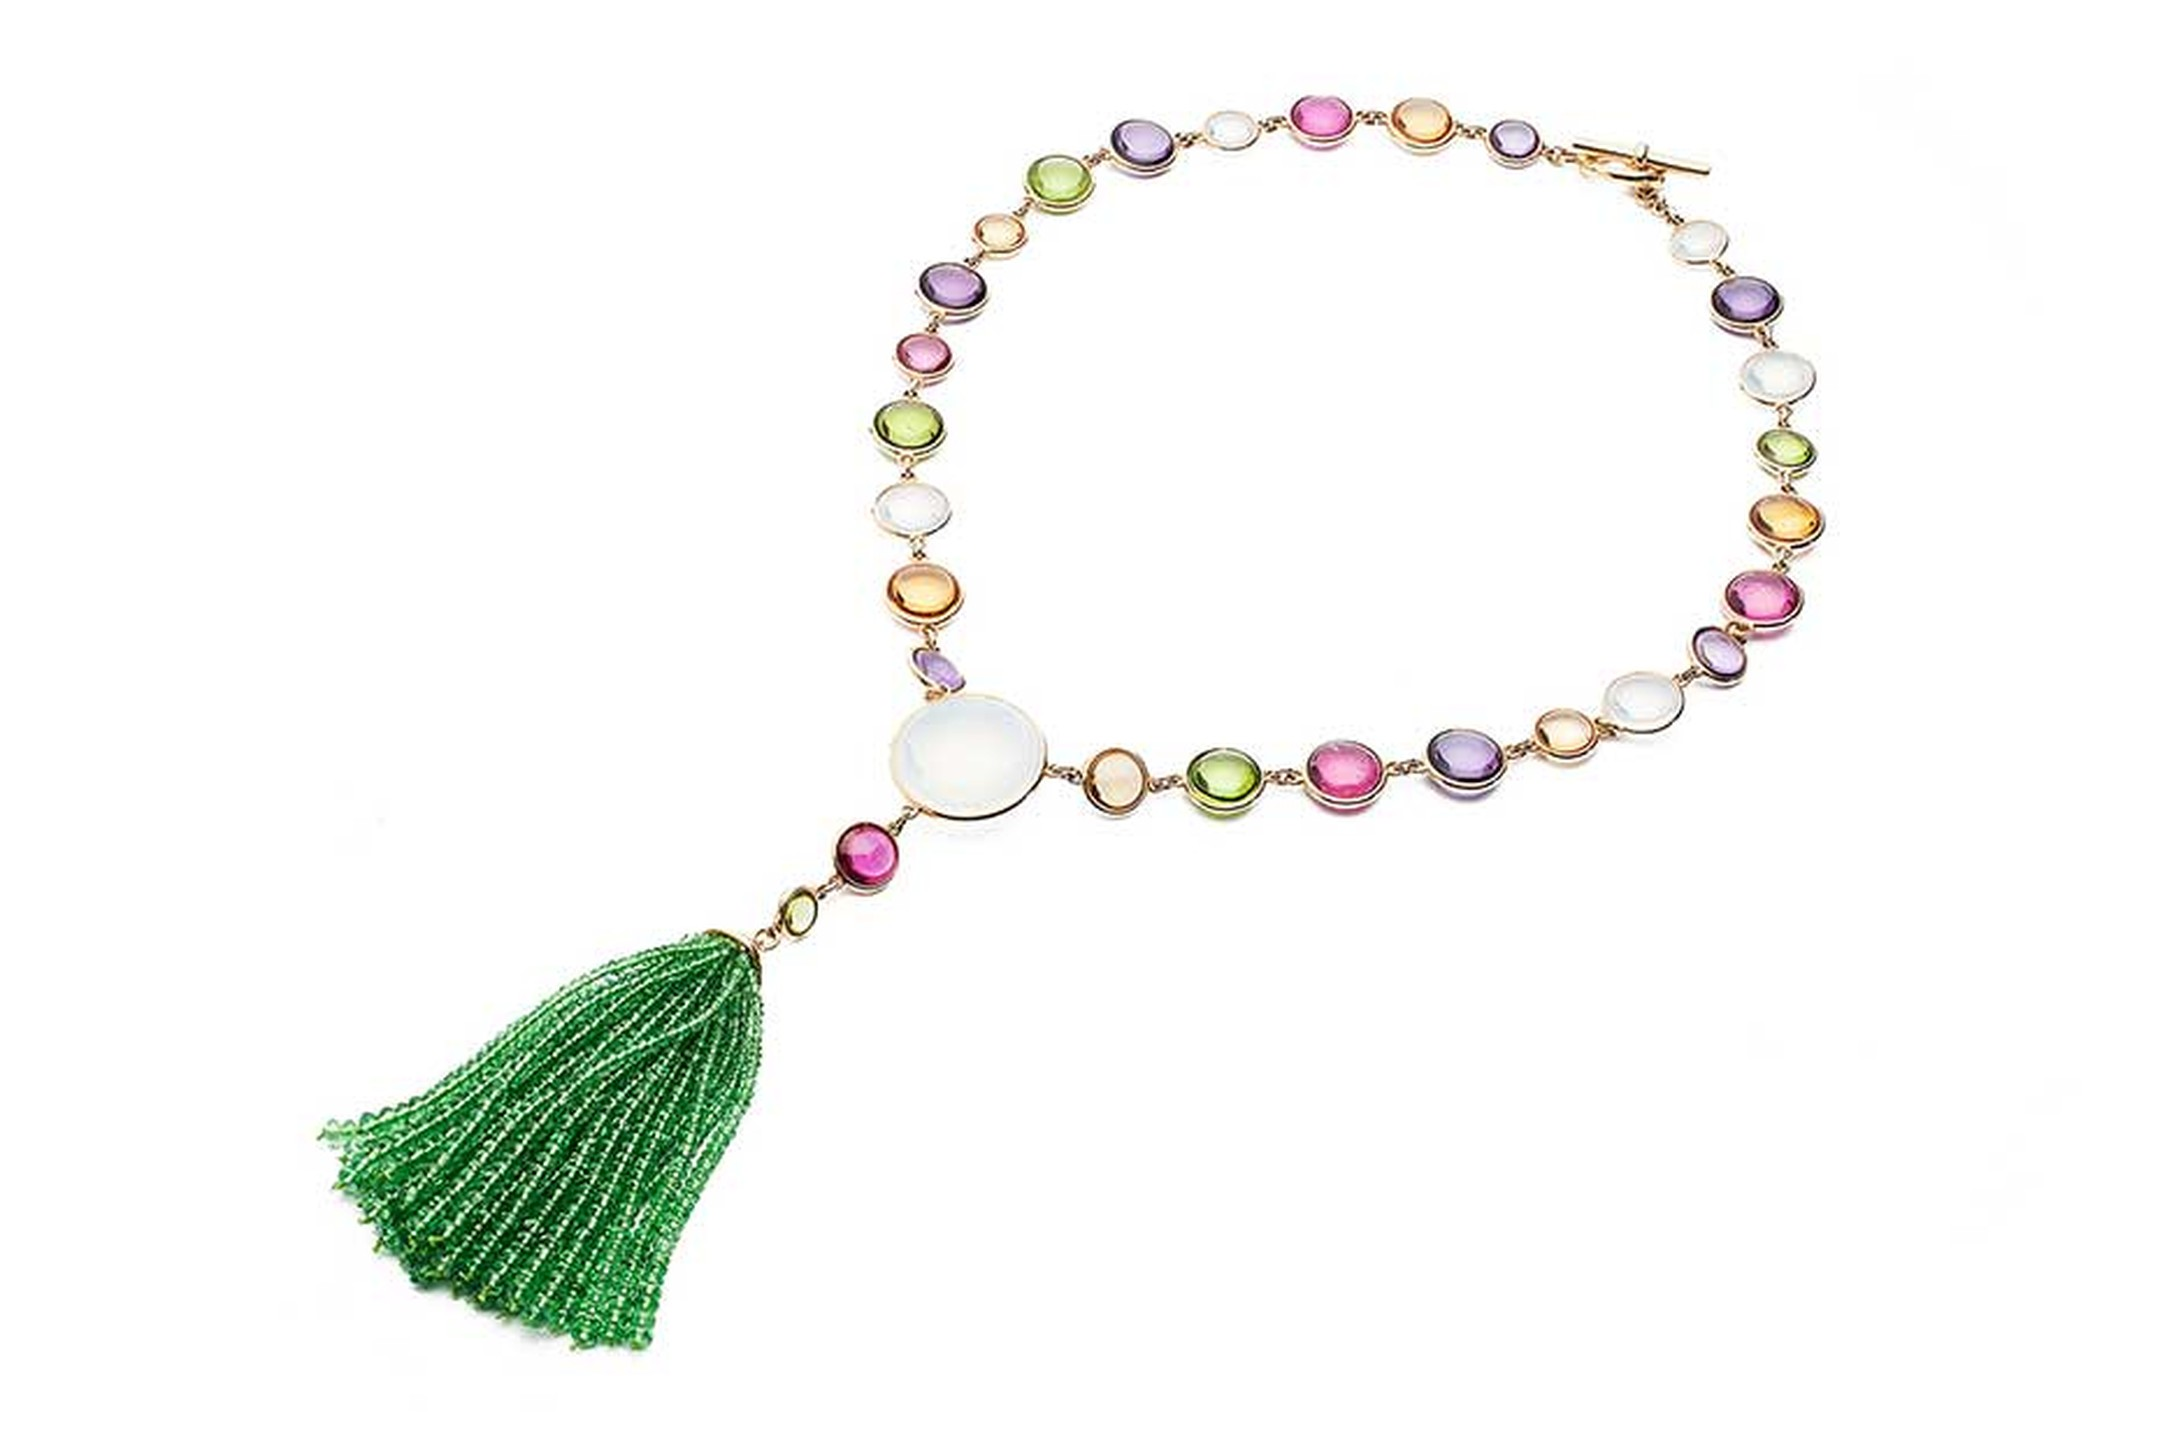 Goshwara-tassel-necklace.jpg